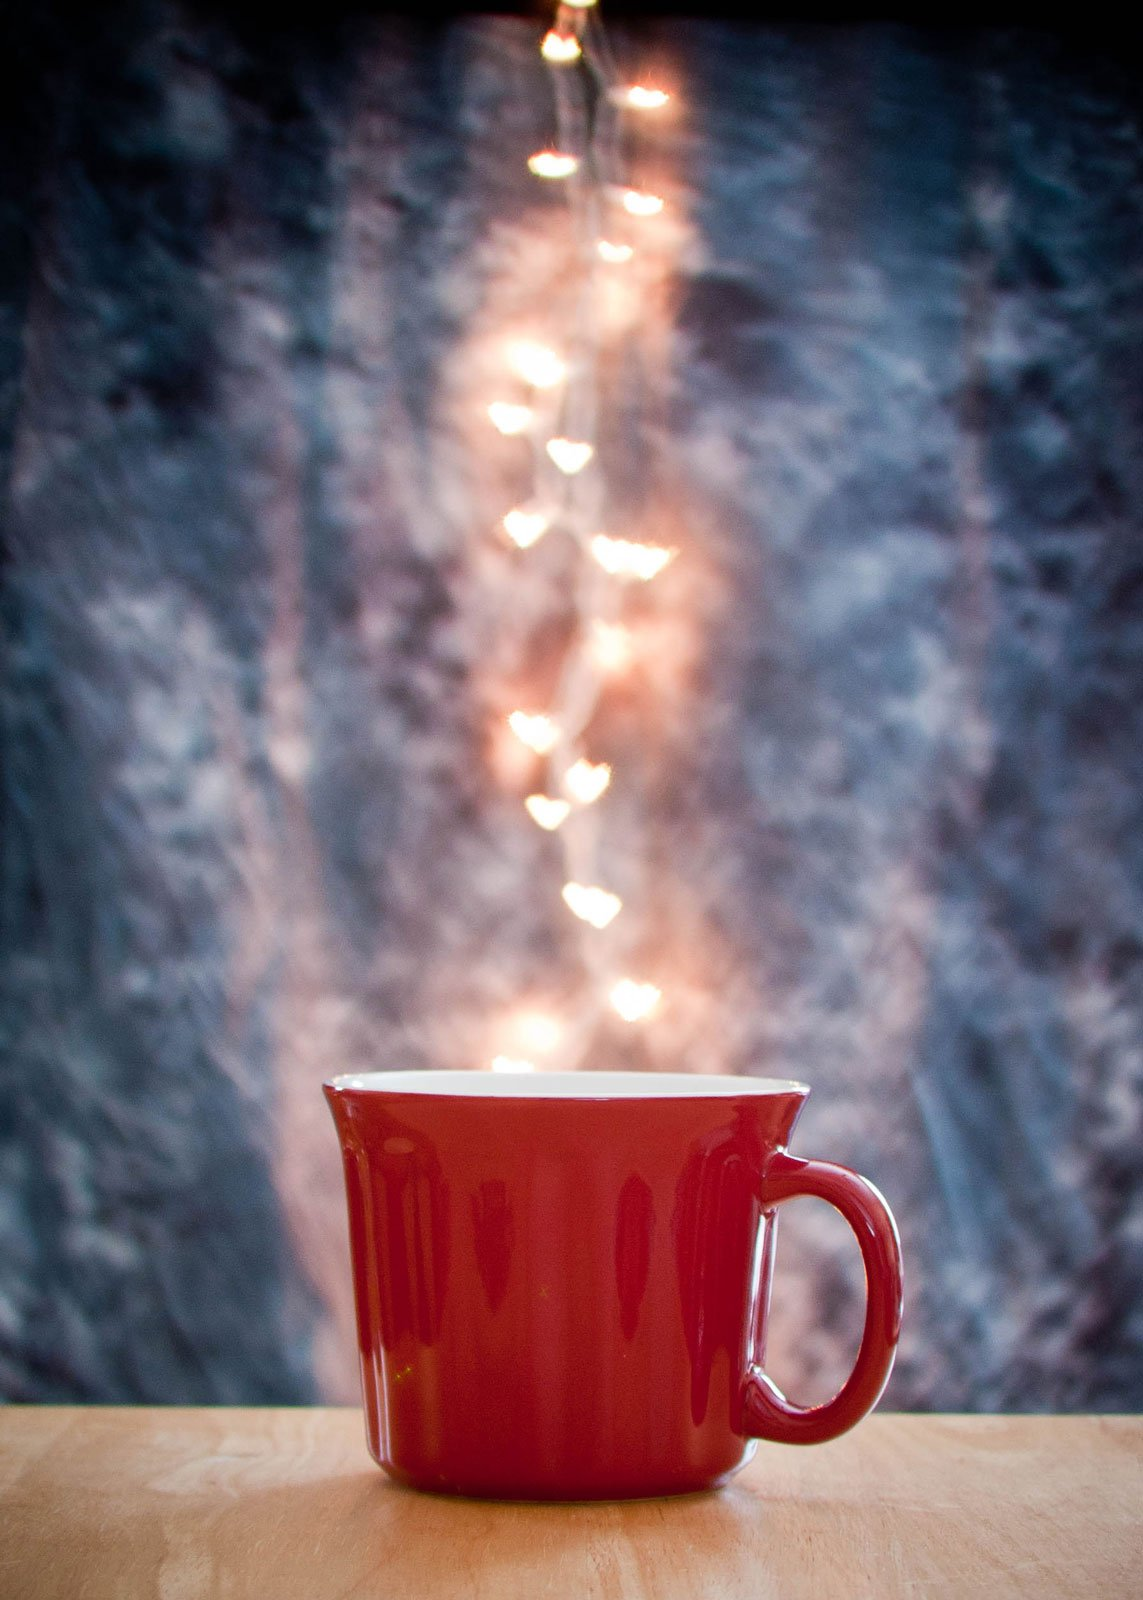 Tina_steamy-mug-with-heart-bokeh-tina_g